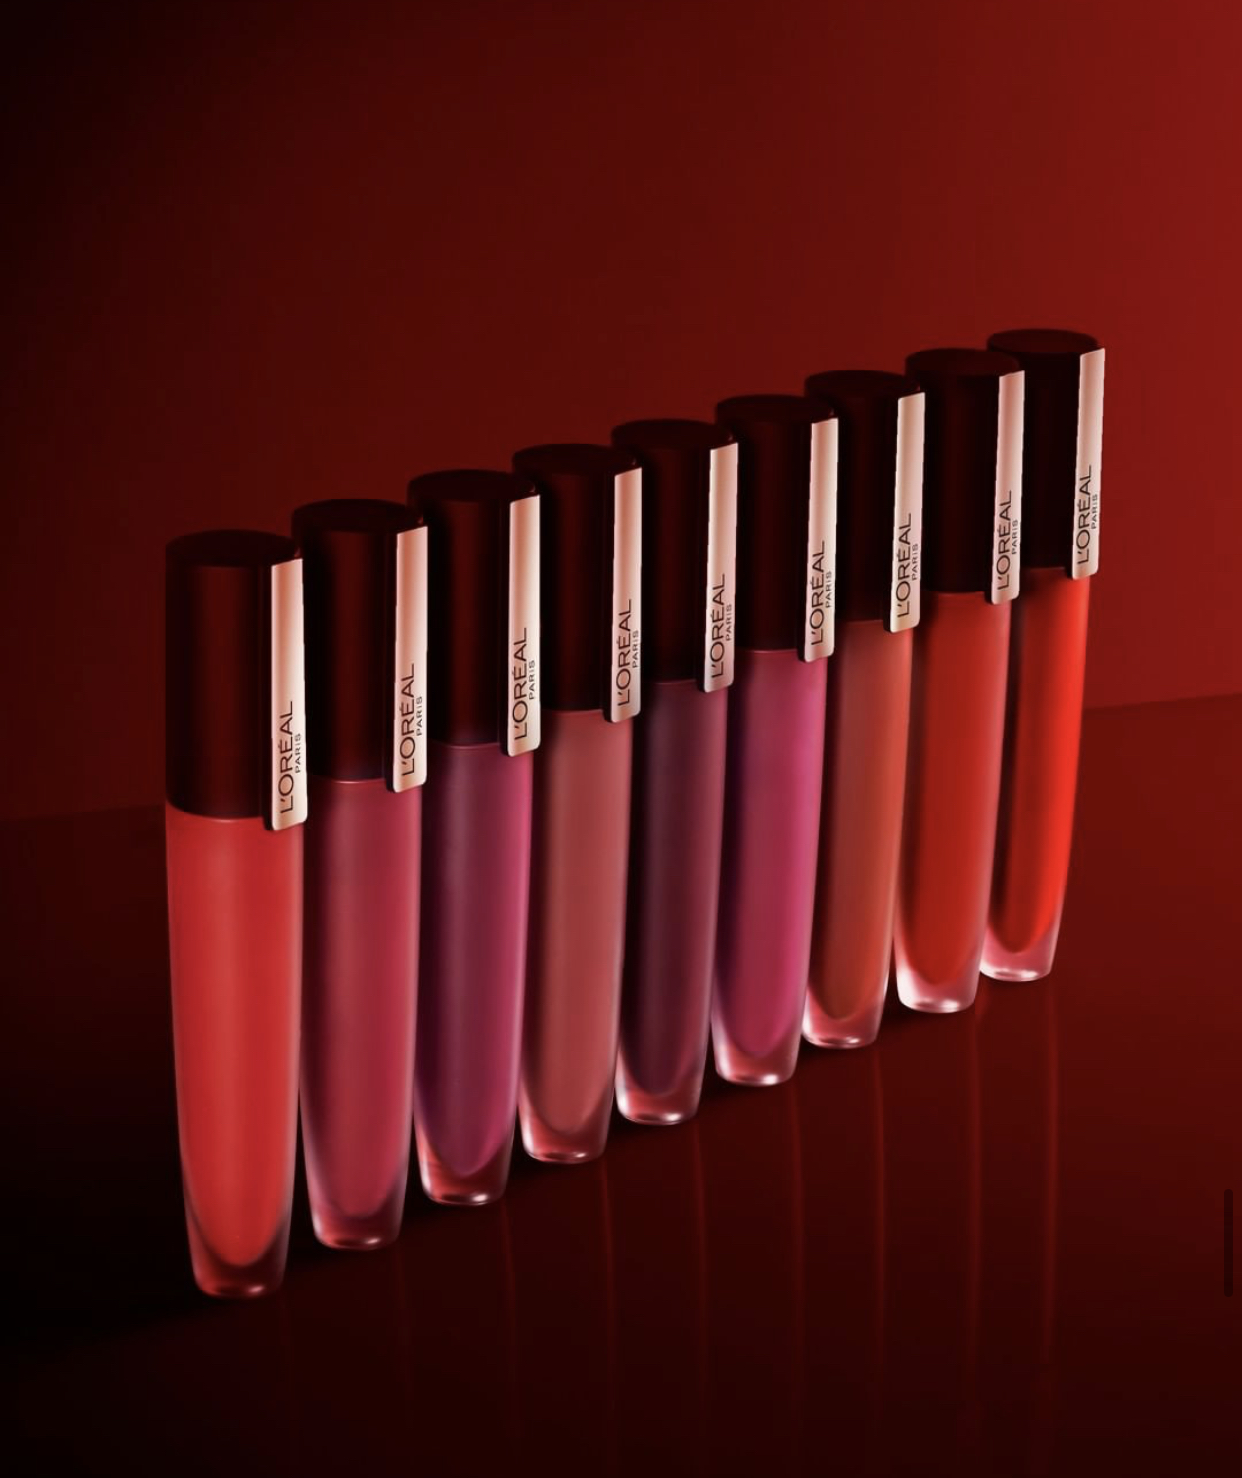 L'Oreal EmpoweRed Rouge Signature Matte Lip Stain Collection